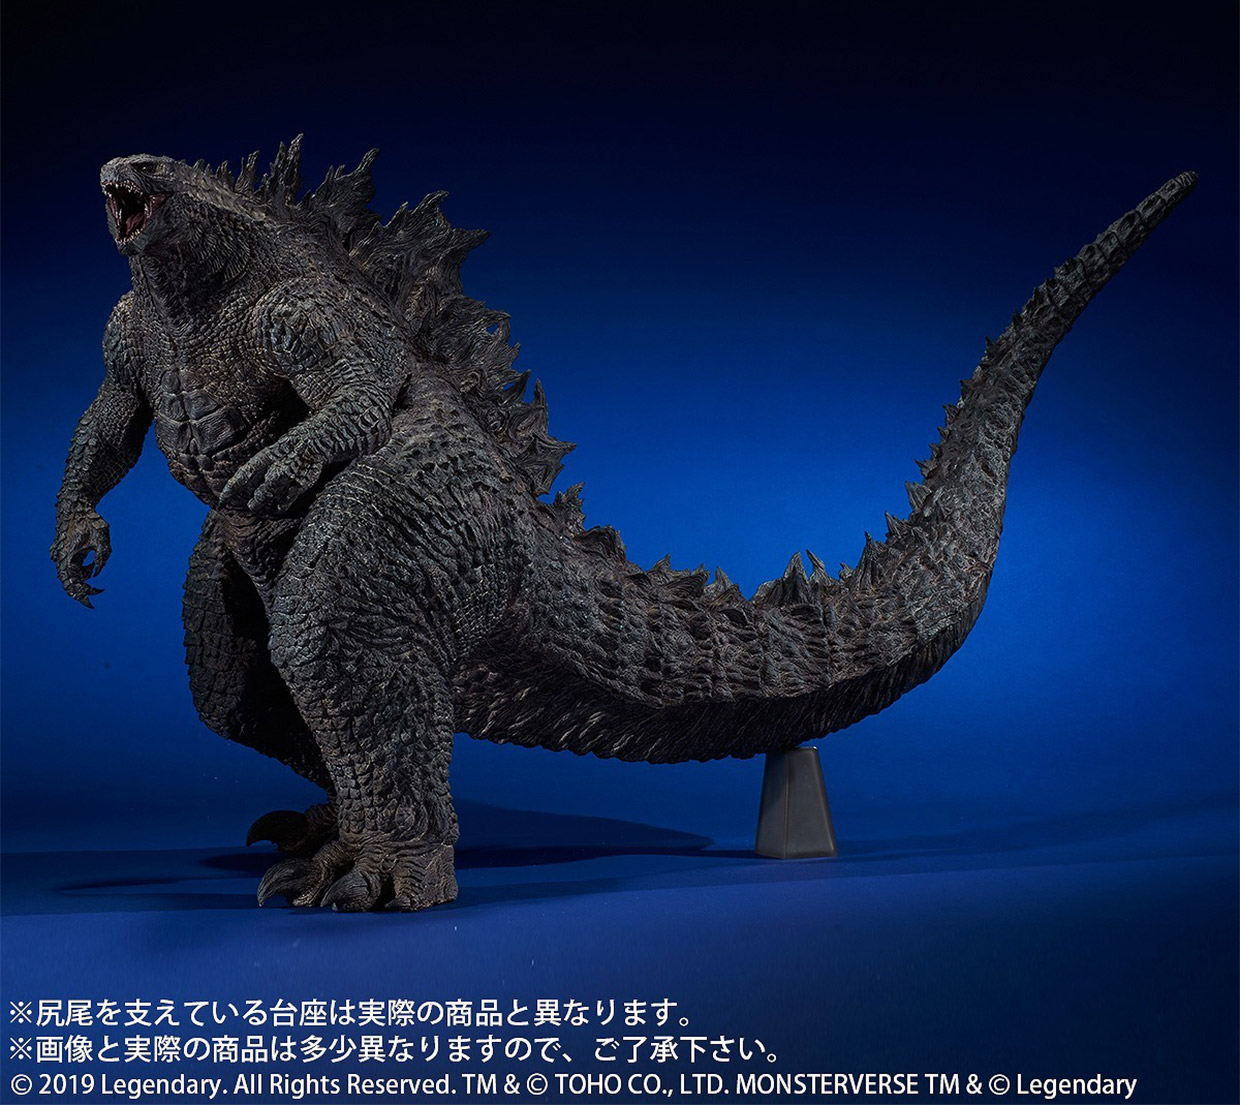 The X-PLUS Gigantic Godzilla Figure Is A Real Monster